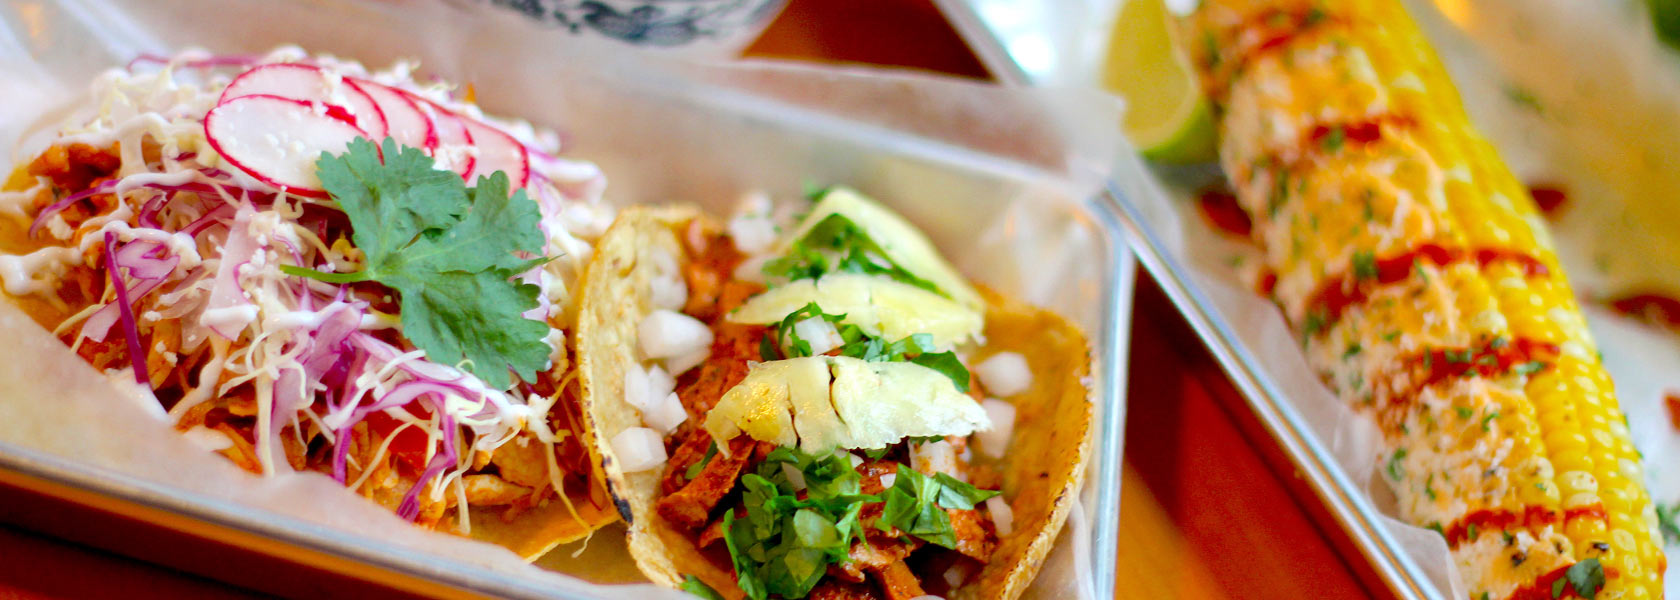 Brightly dressed tacos and buttered street corn on metal trays.